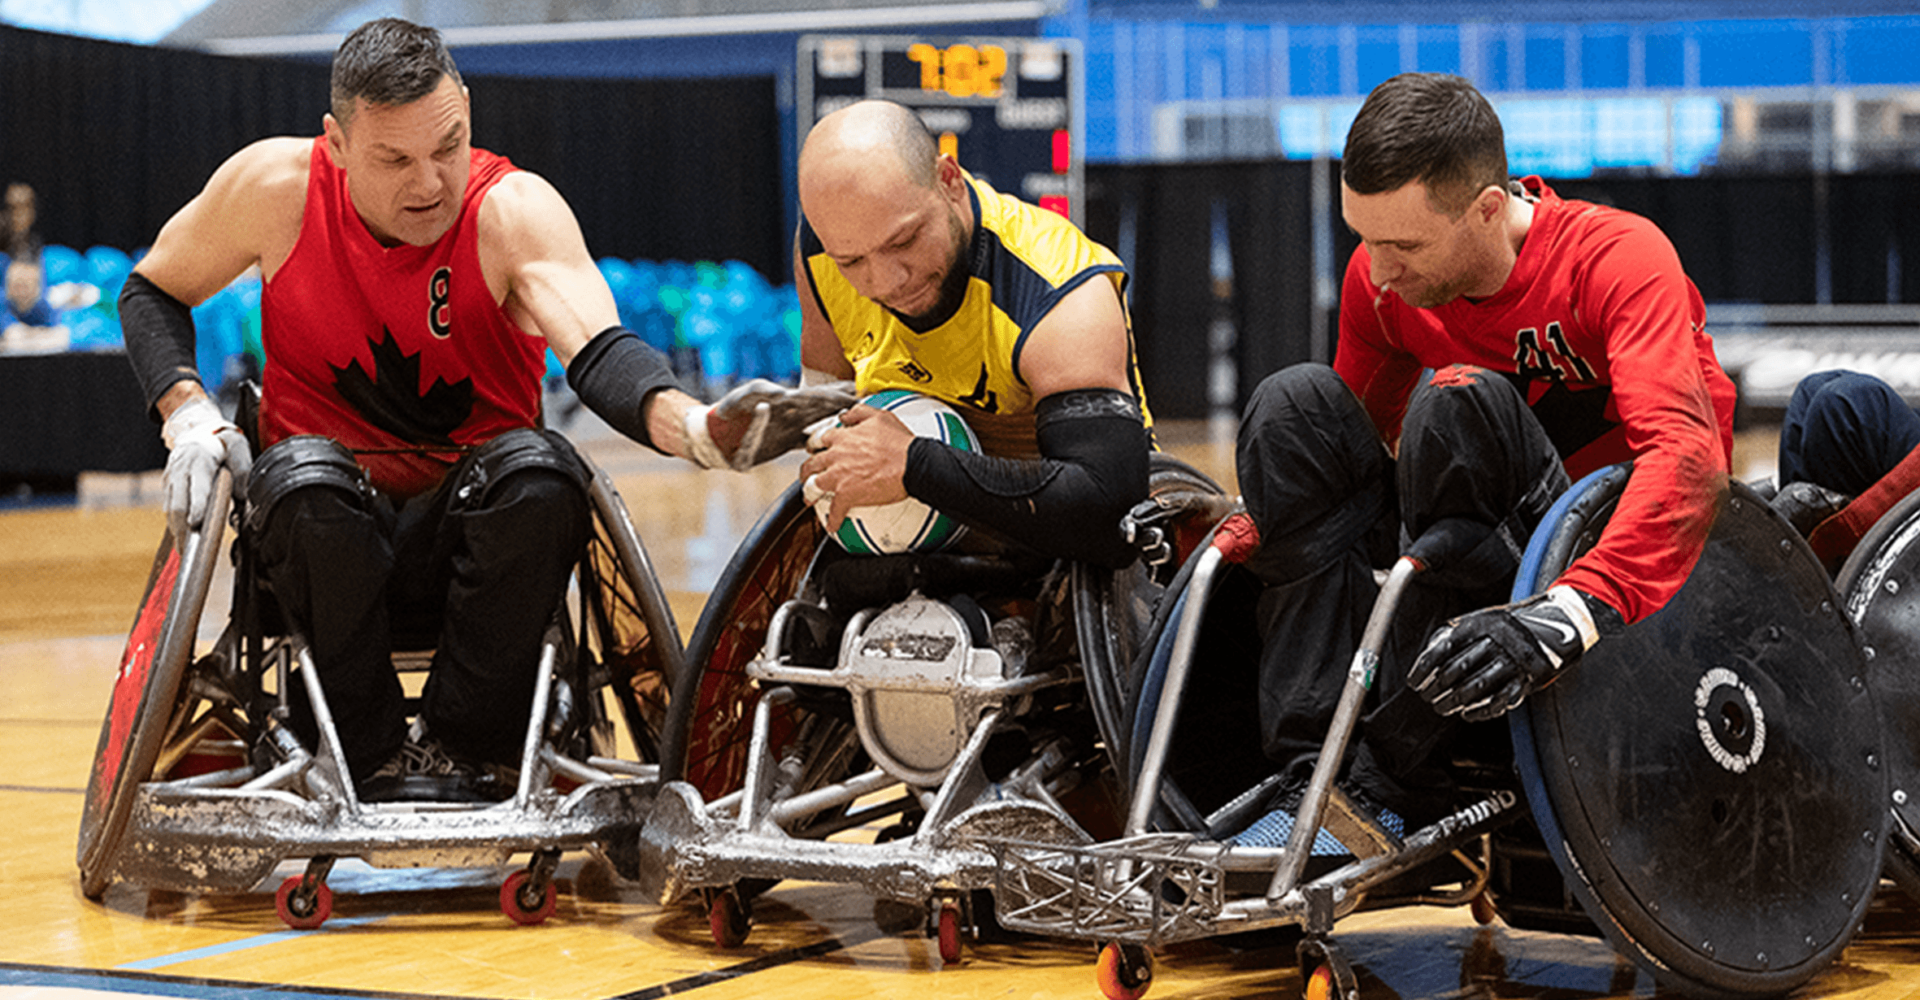 CANADA'S WHEELCHAIR RUGBY TEAM QUALIFY FOR TOKYO 2020 PARALYMPICS